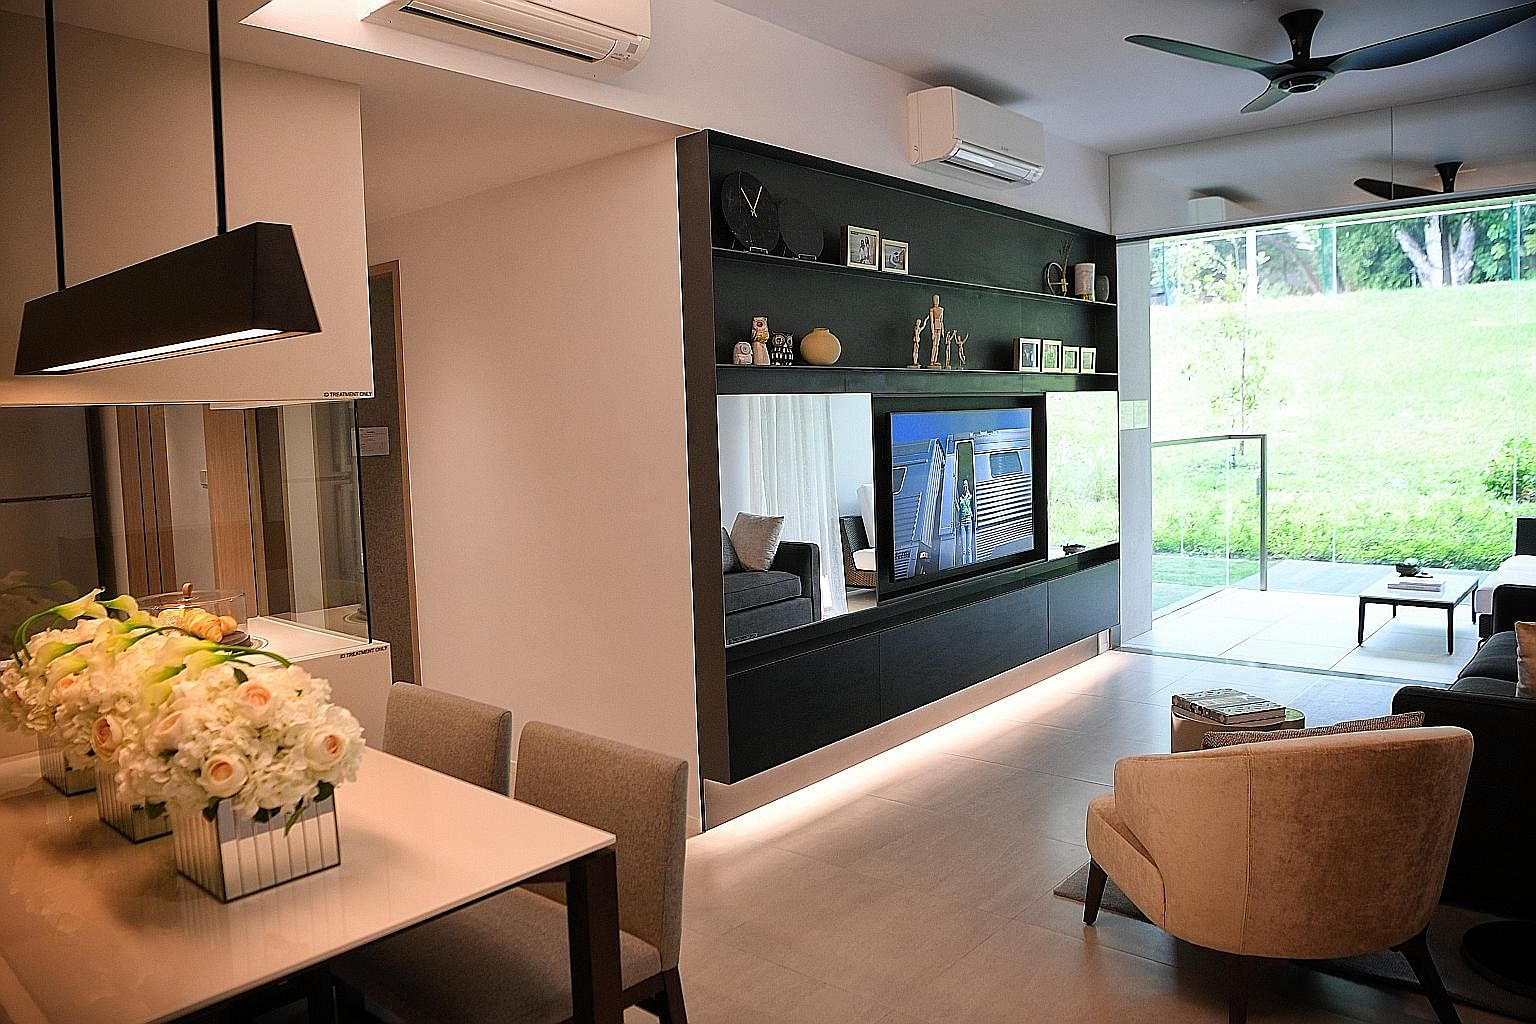 Woodleigh Residences (above) in Bidadari estate is a mixed-use commercial and residential development comprising 667 two-, three-and four-bedroom units, with prices starting at $1,873 per sq ft. There will be a soft launch today, where members of the